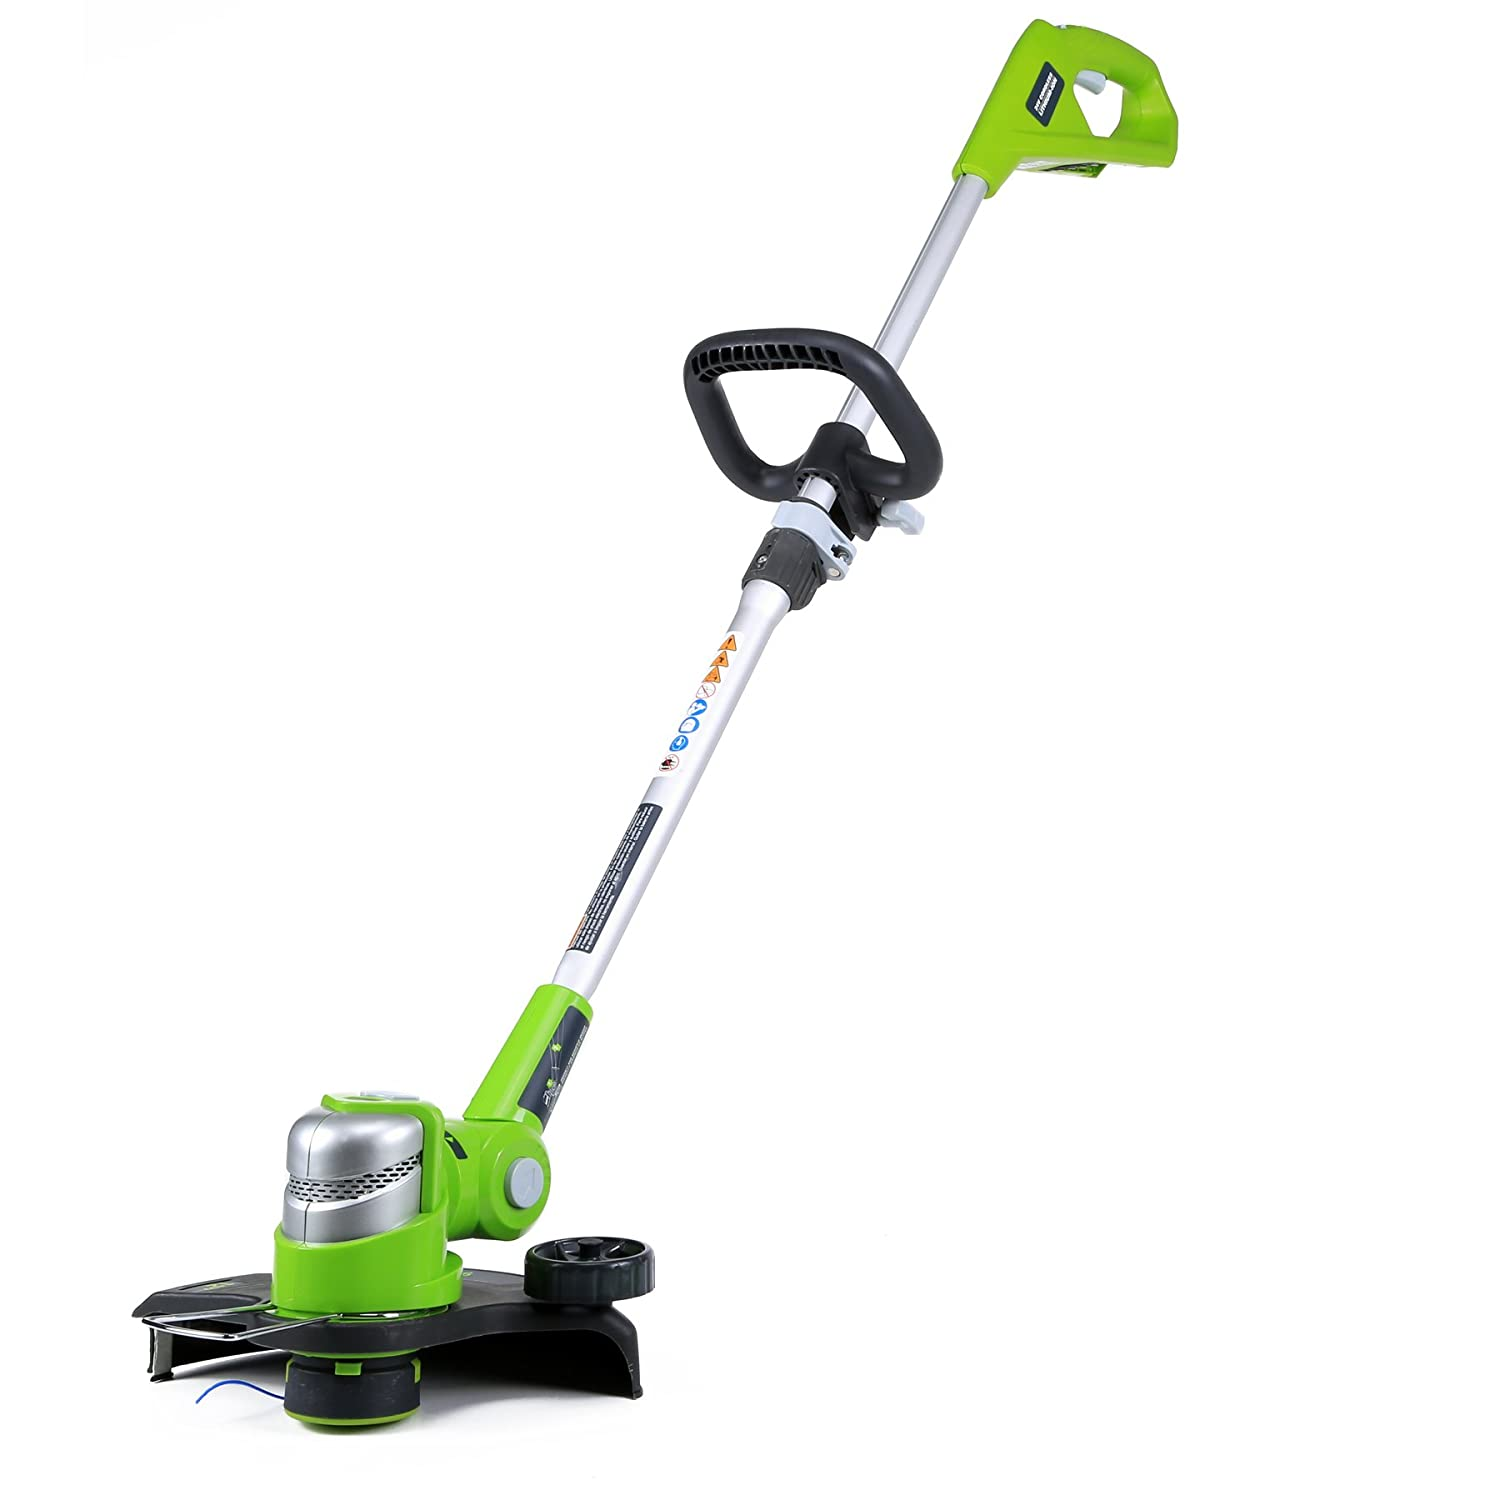 Greenworks 12-Inch 24V Cordless String Trimmer Edger, Battery Not Included 2100302